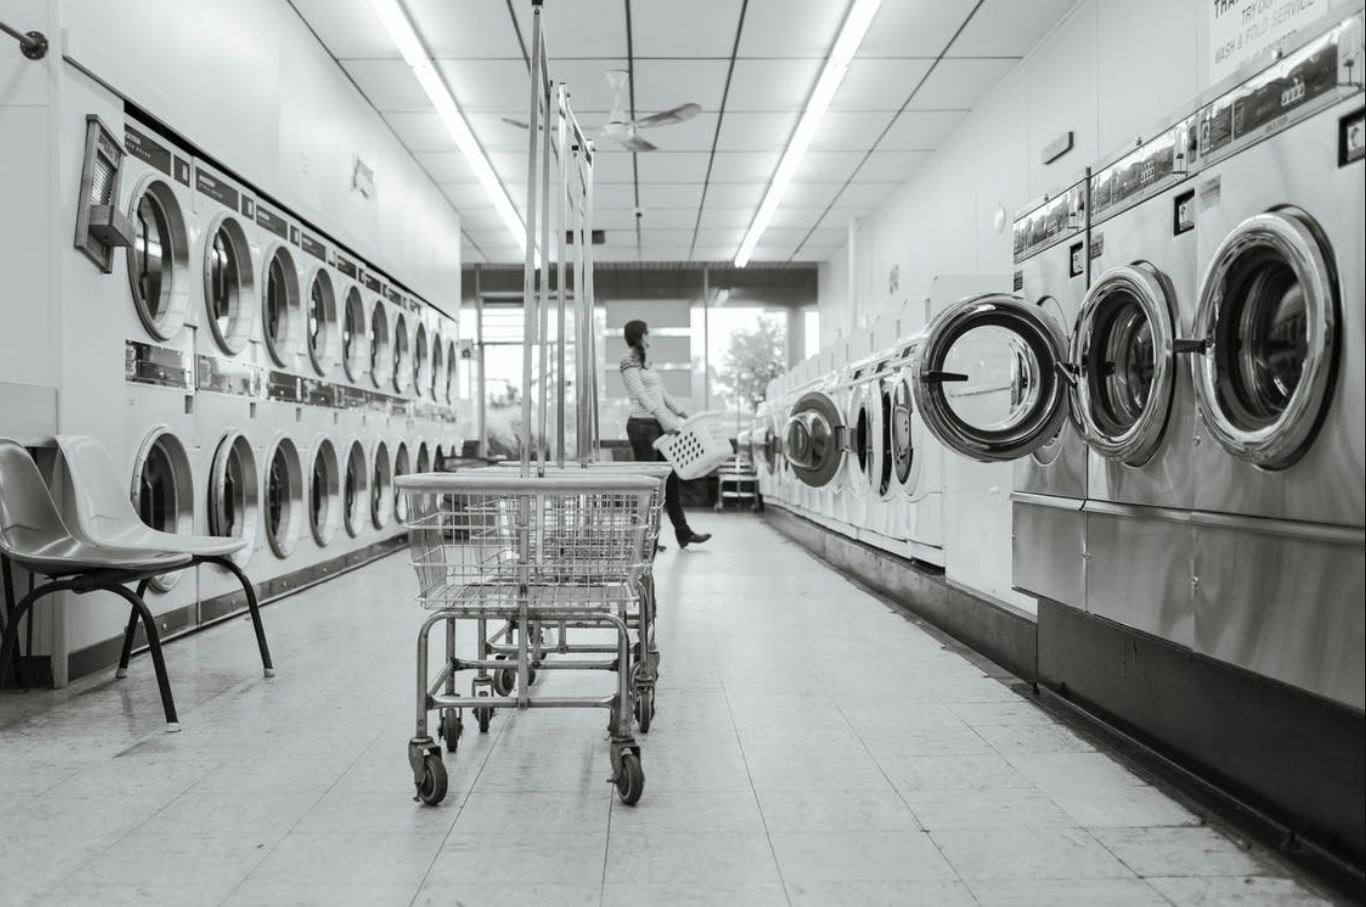 Laundry businesses use automation